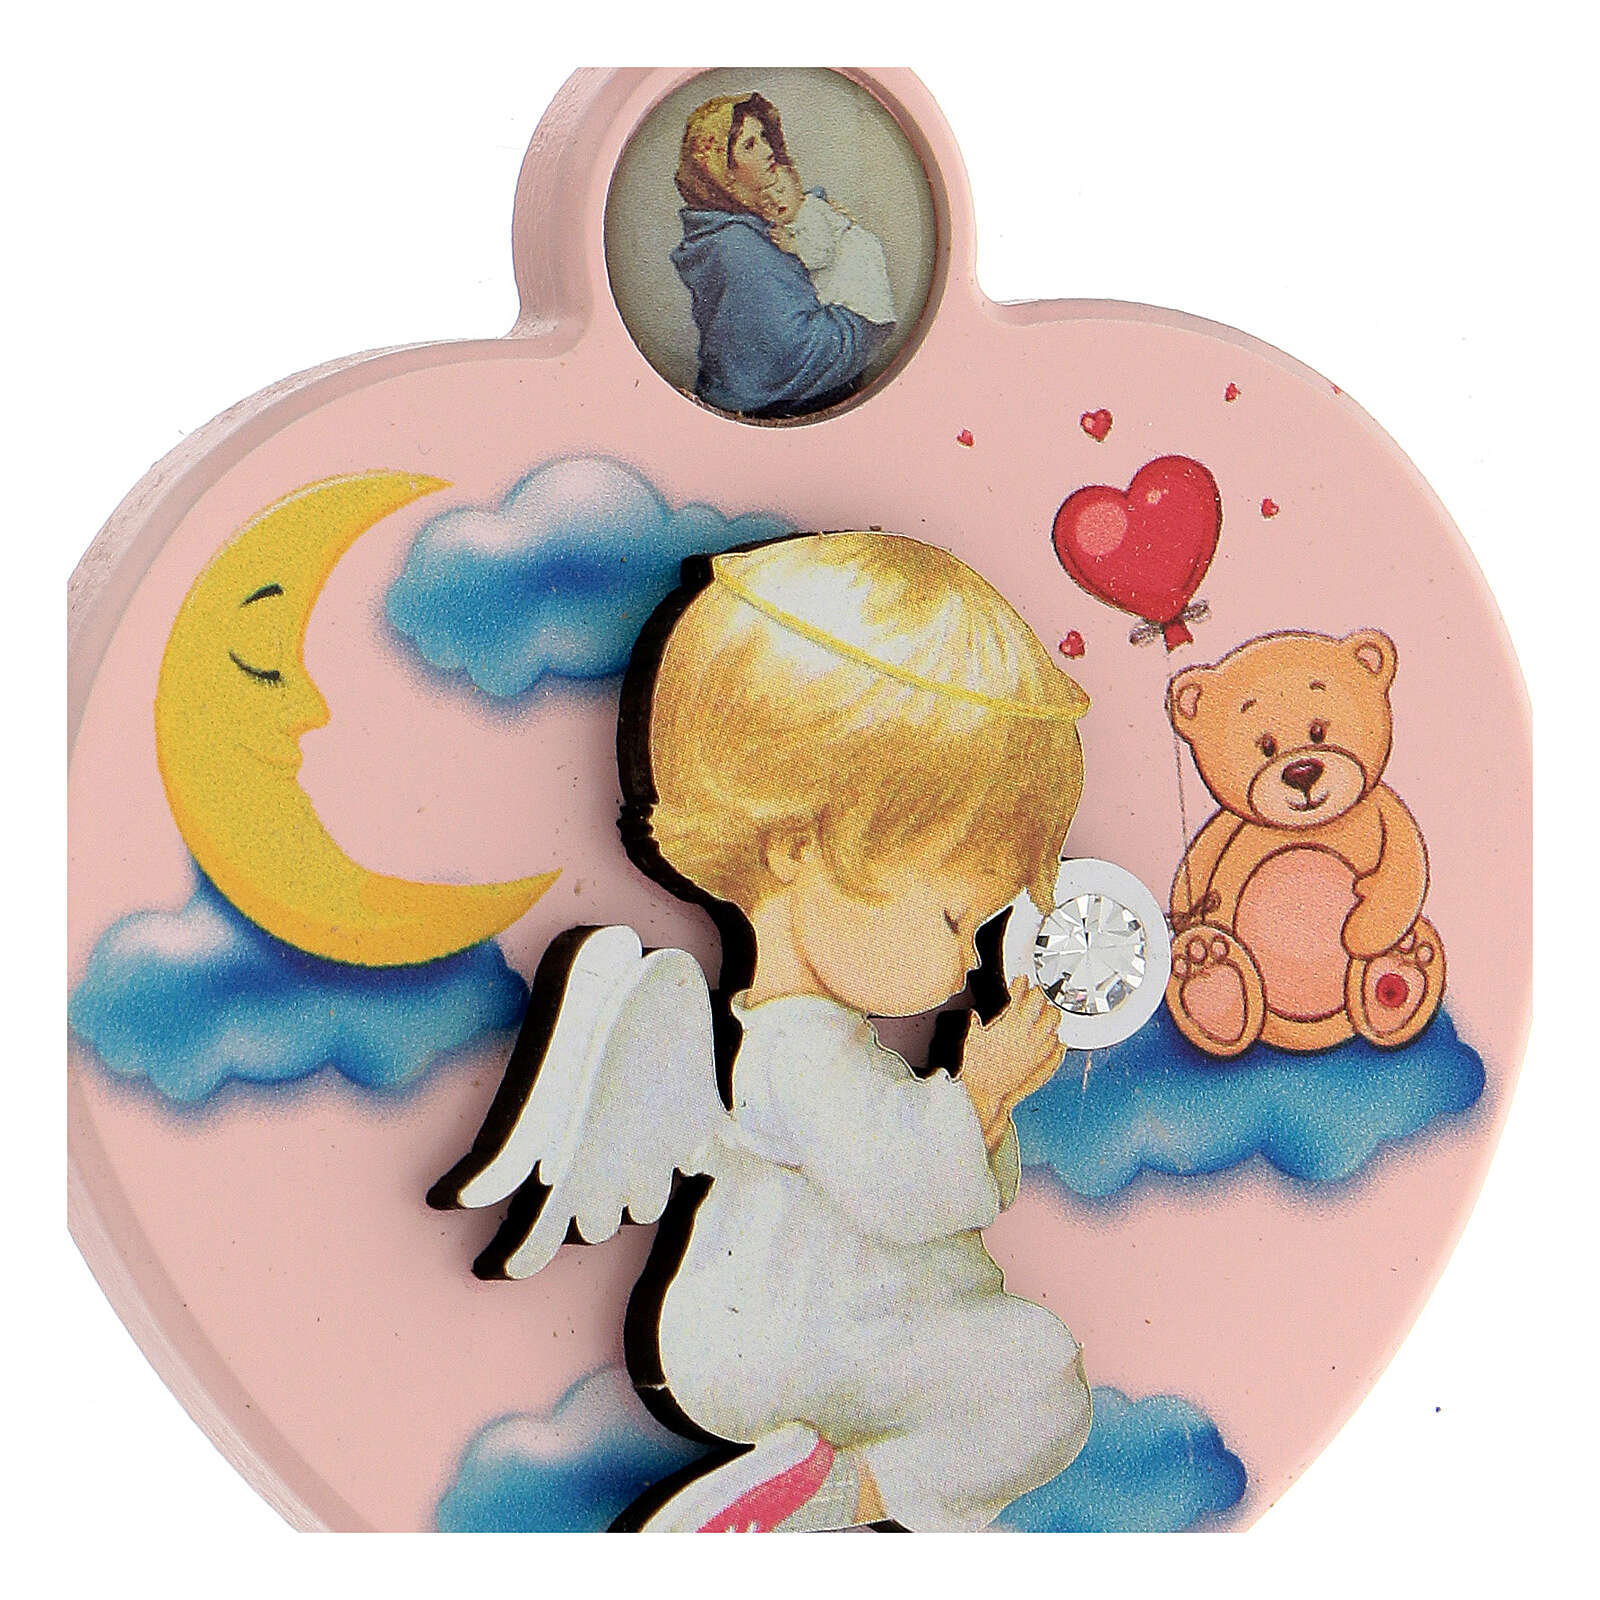 Cradle top souvenir with heart and angel 4